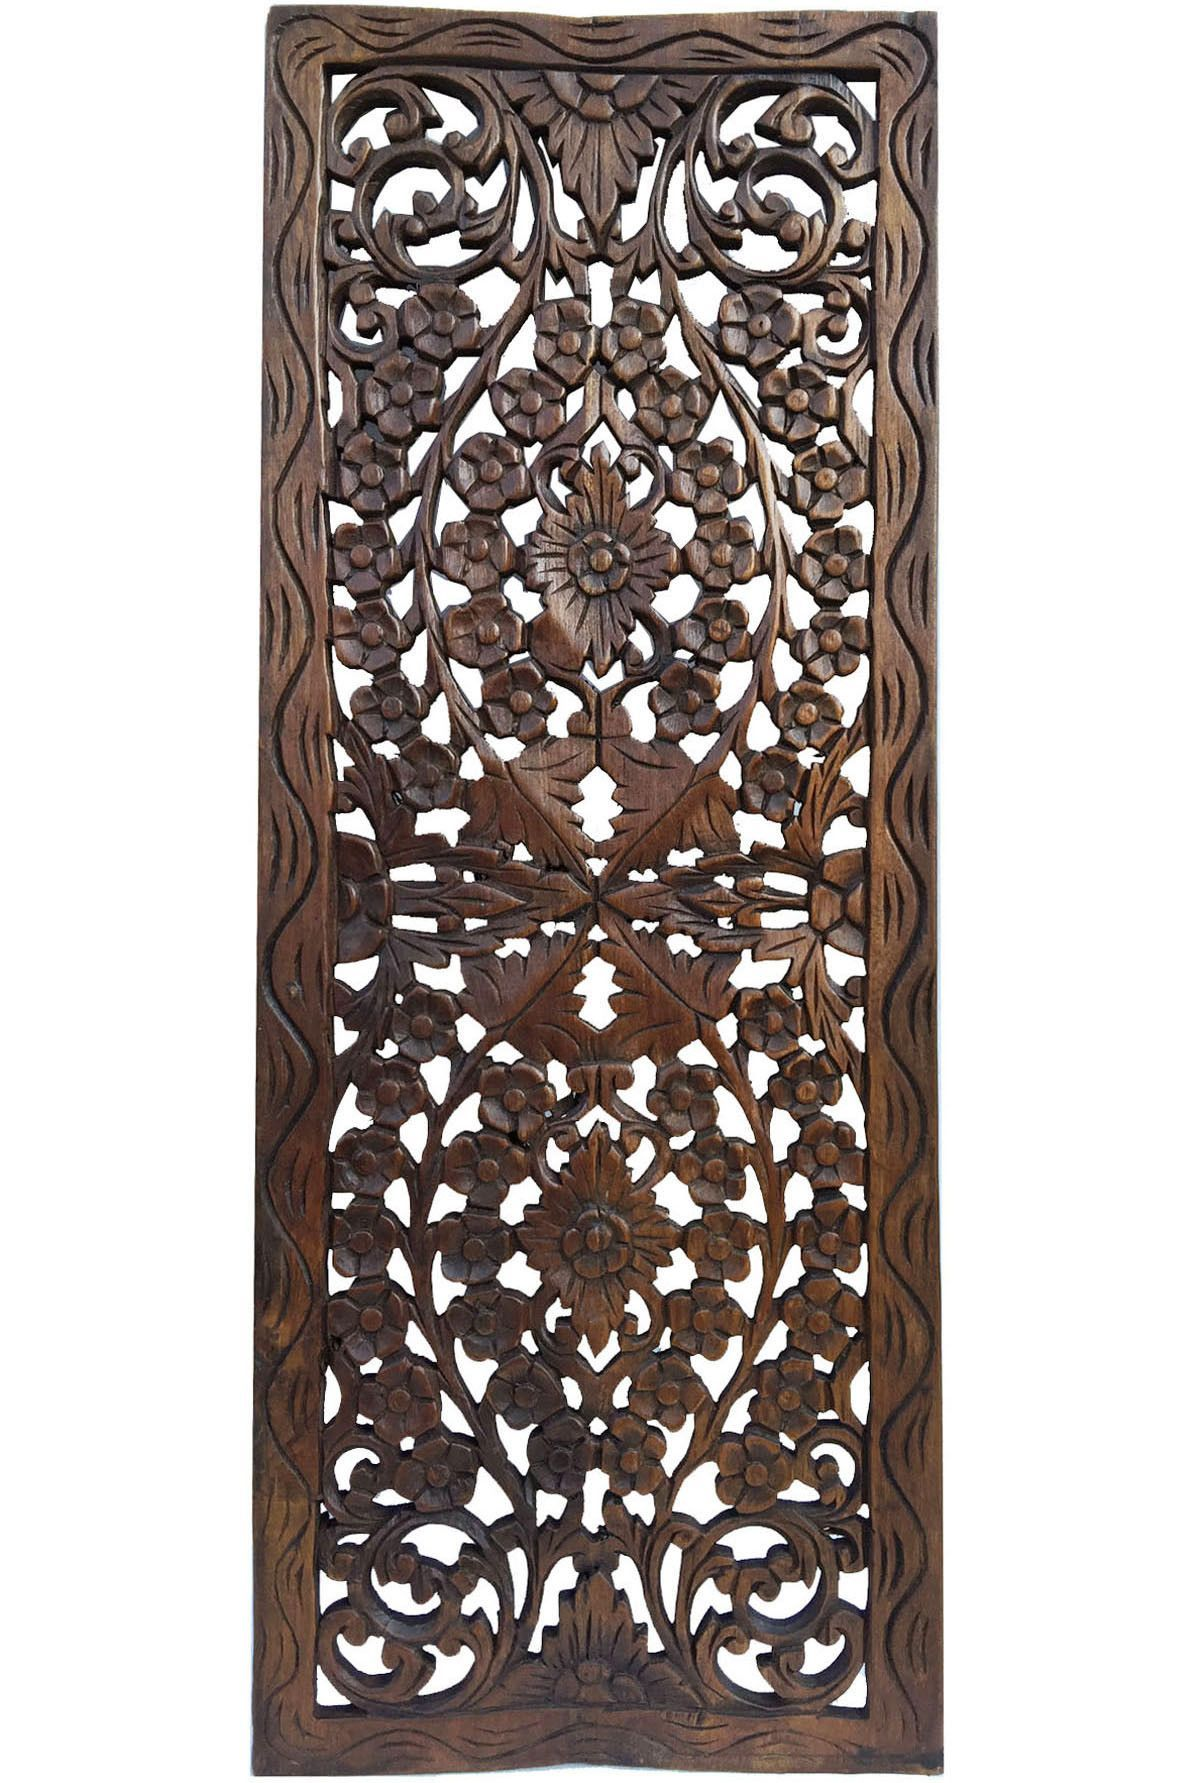 Wood Decorative Wall Art Floral Wood Carved Wall Panel Wall Hanging Asian Home